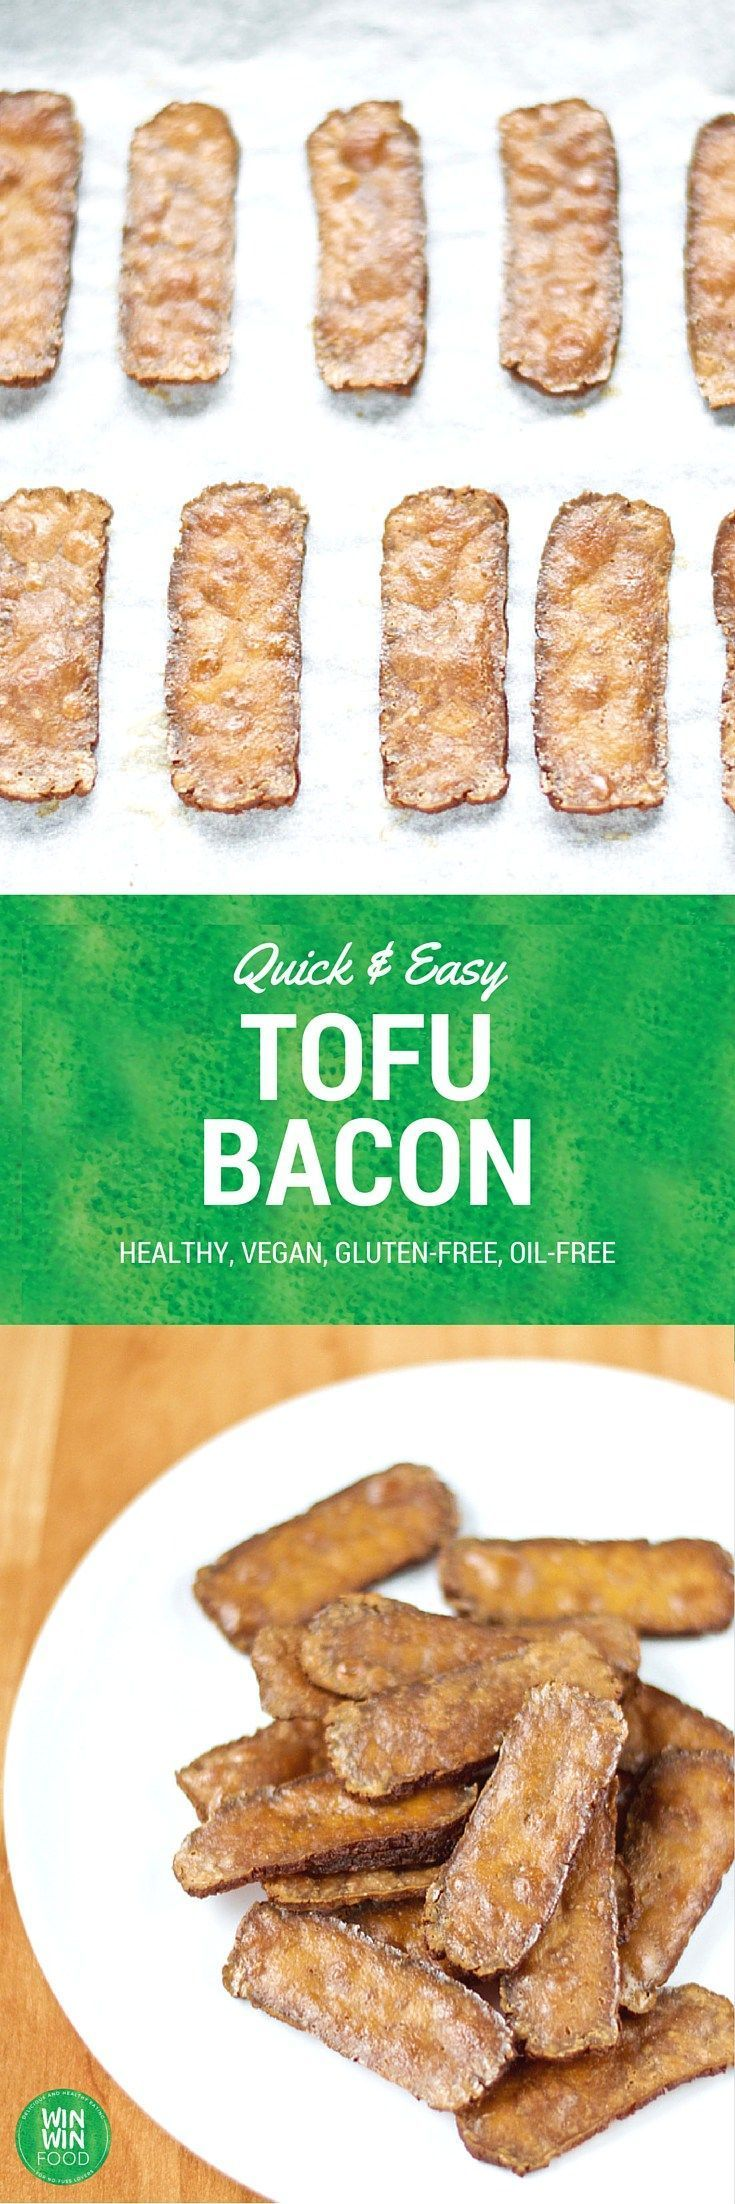 Tofu Bacon | WIN-WINFOOD.com #healthy #vegan #glutenfree #easy